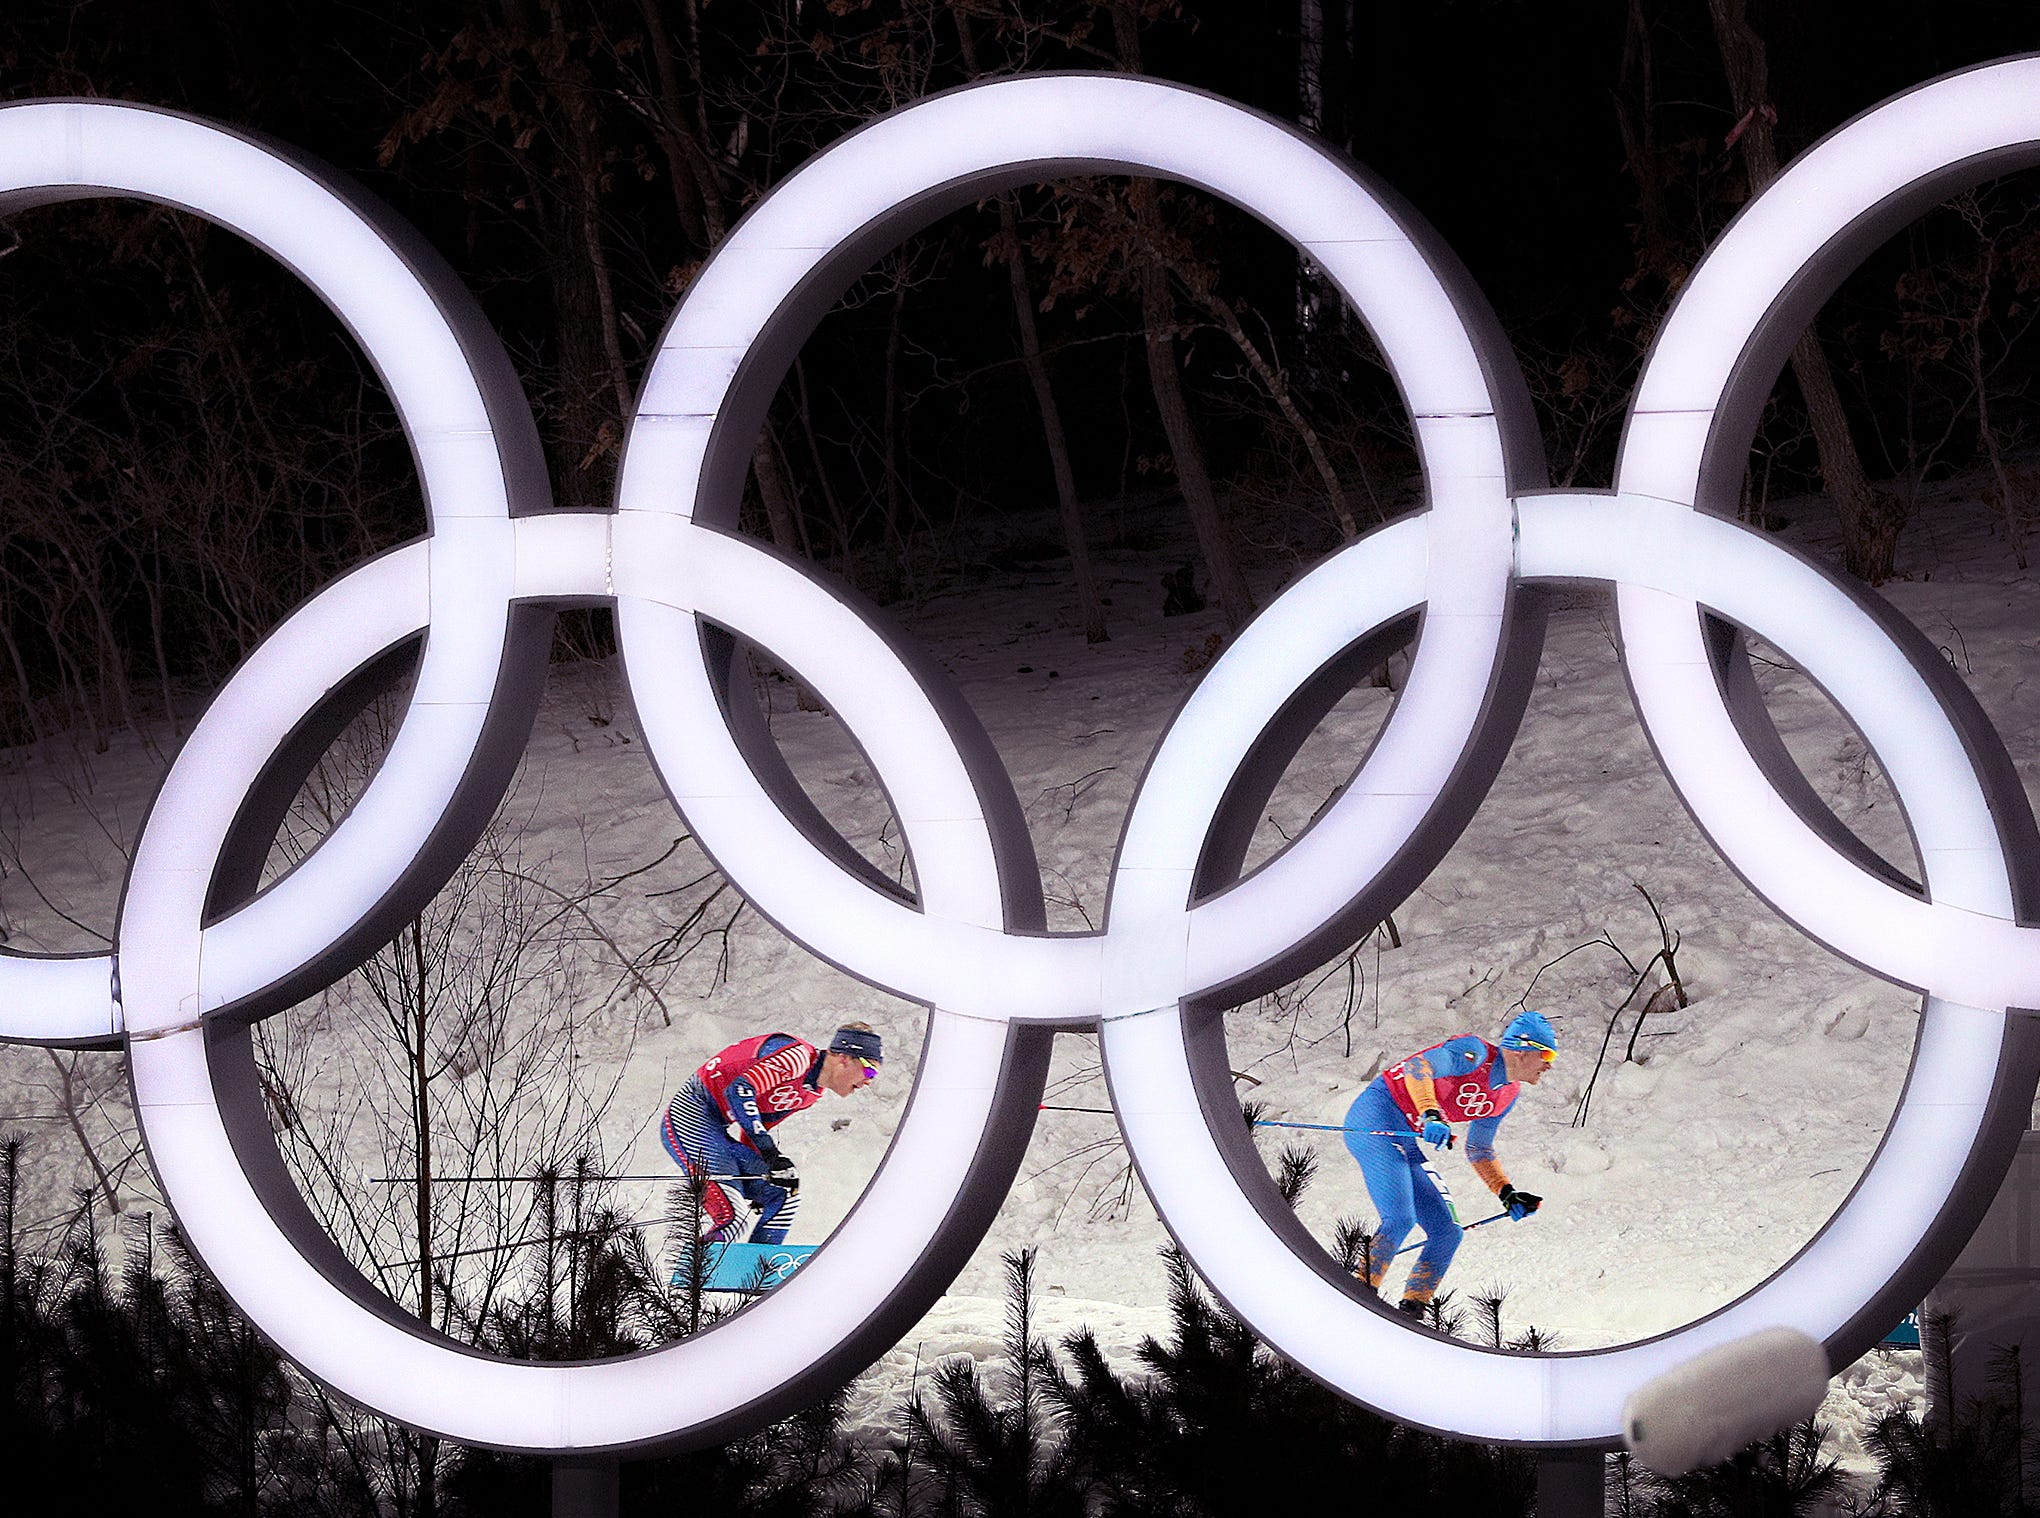 Feb 21, 2018; Pyeongchang, South Korea; Team USA's Erik Bjornsen and Italy's Dietmar Noeckler ski past the Olympic rings during the Men's Team Free Sprint cross-country finals the Pyeongchang 2018 Olympic Winter Games at Alpensia Cross-Country Centre. Mandatory Credit: Matt Kryger-USA TODAY Sports